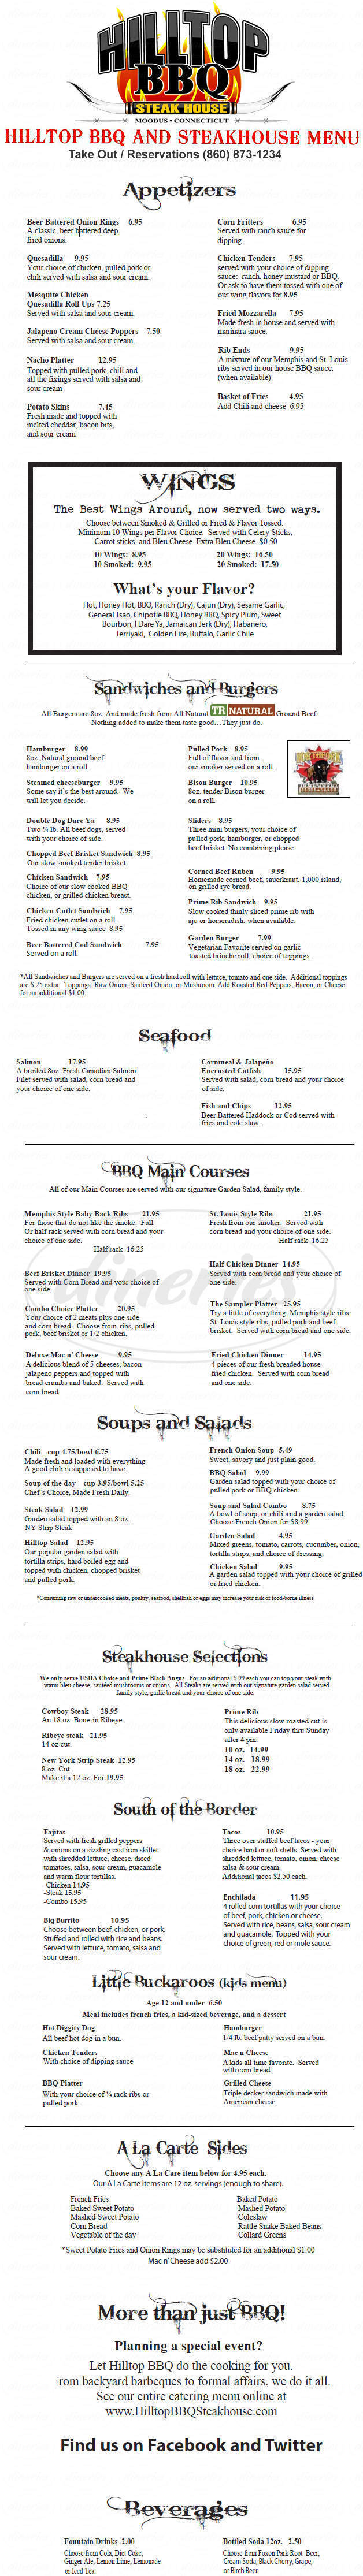 menu for Hilltop Barbecue & Steakhouse